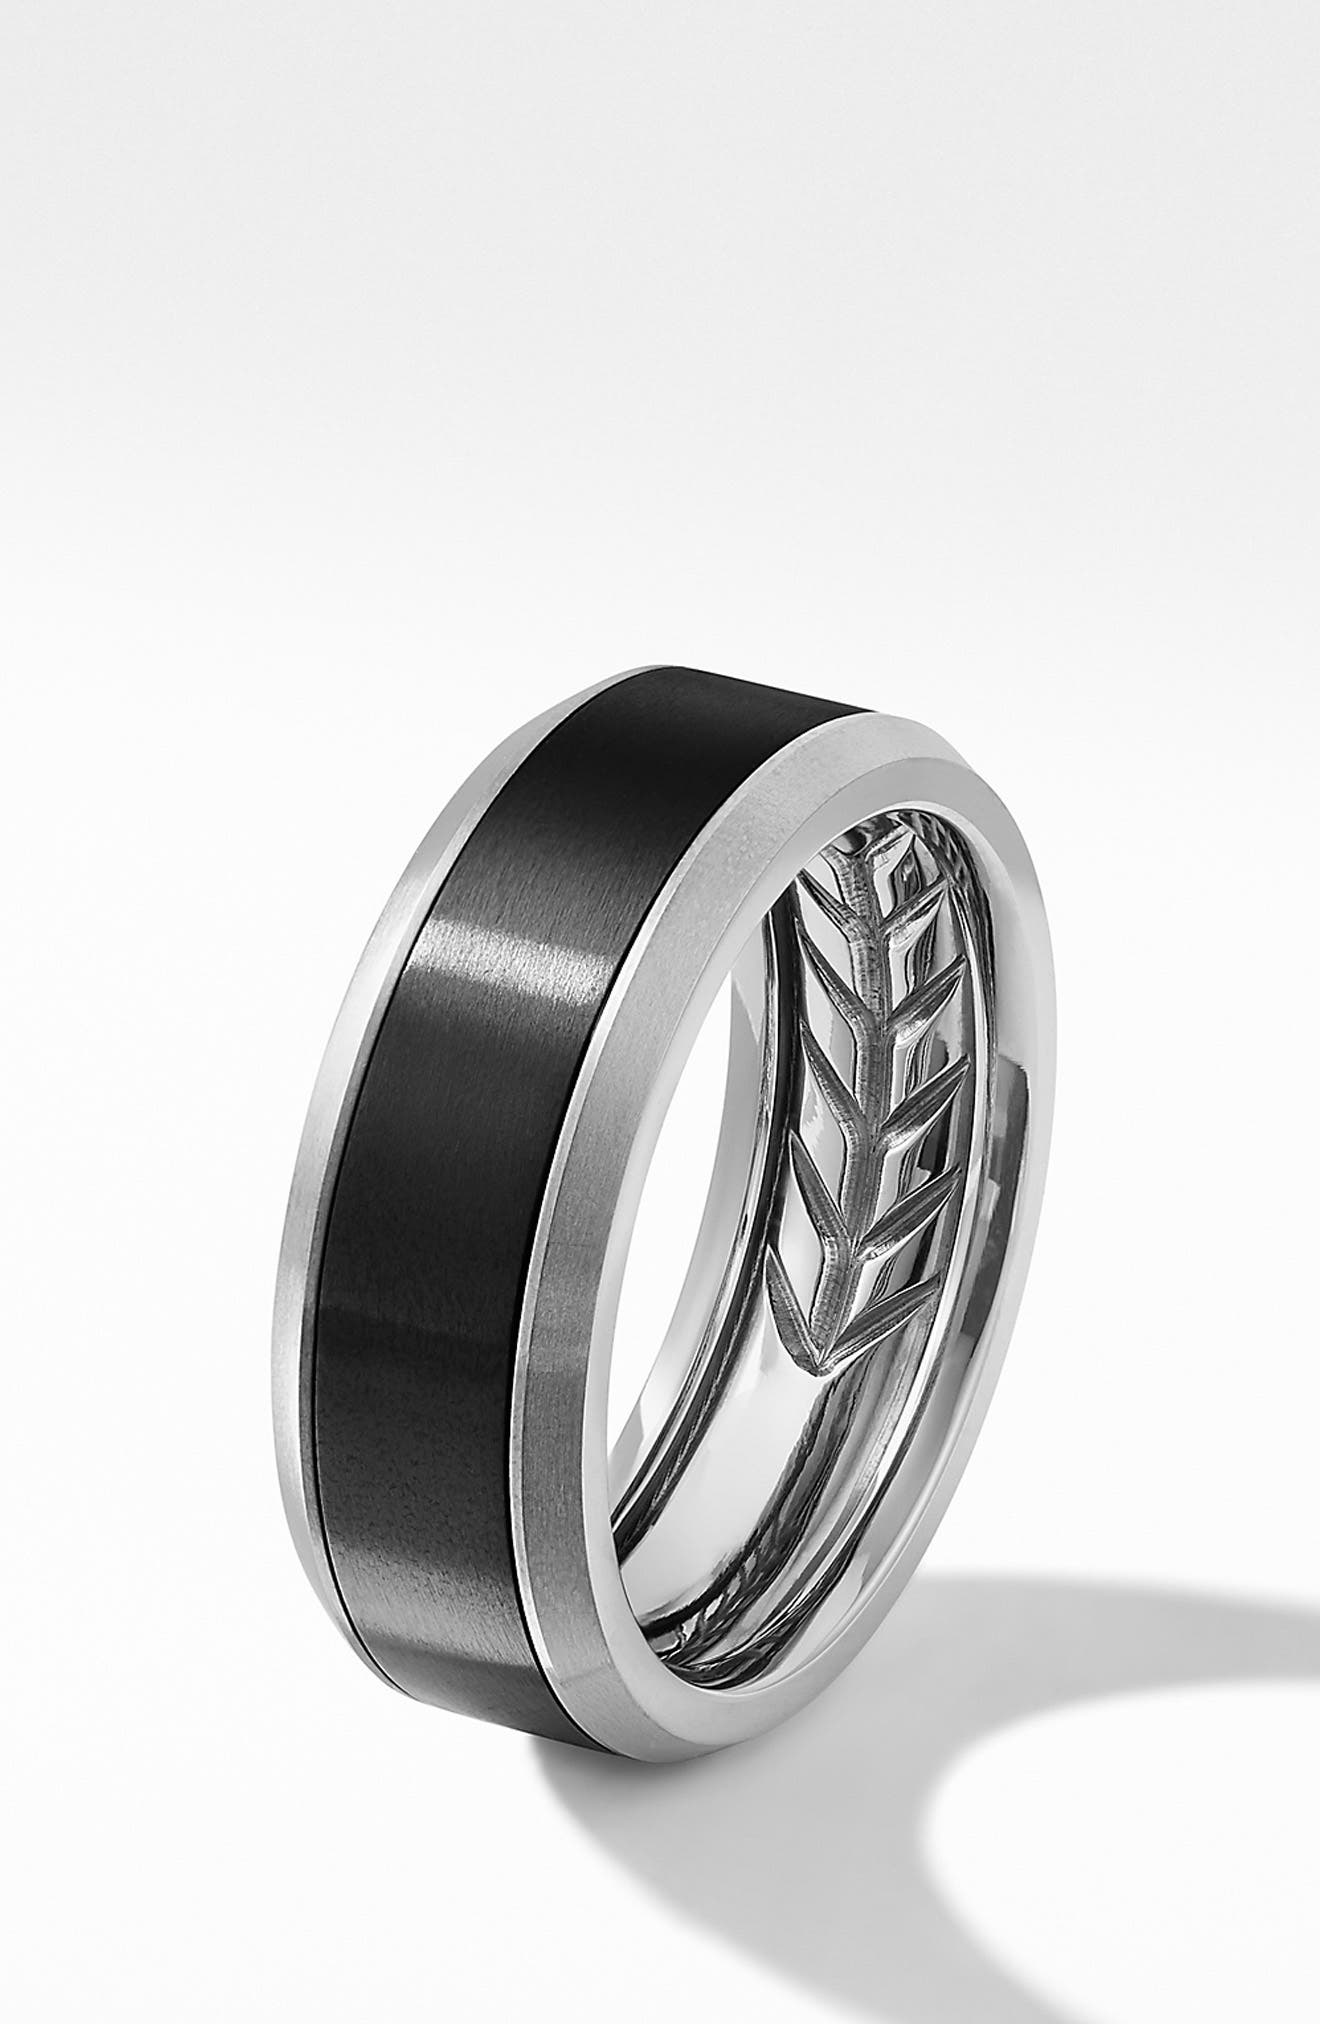 Beveled Titanium Band Ring,                             Alternate thumbnail 3, color,                             GREY TITANIUM/ BLACK TITANIUM